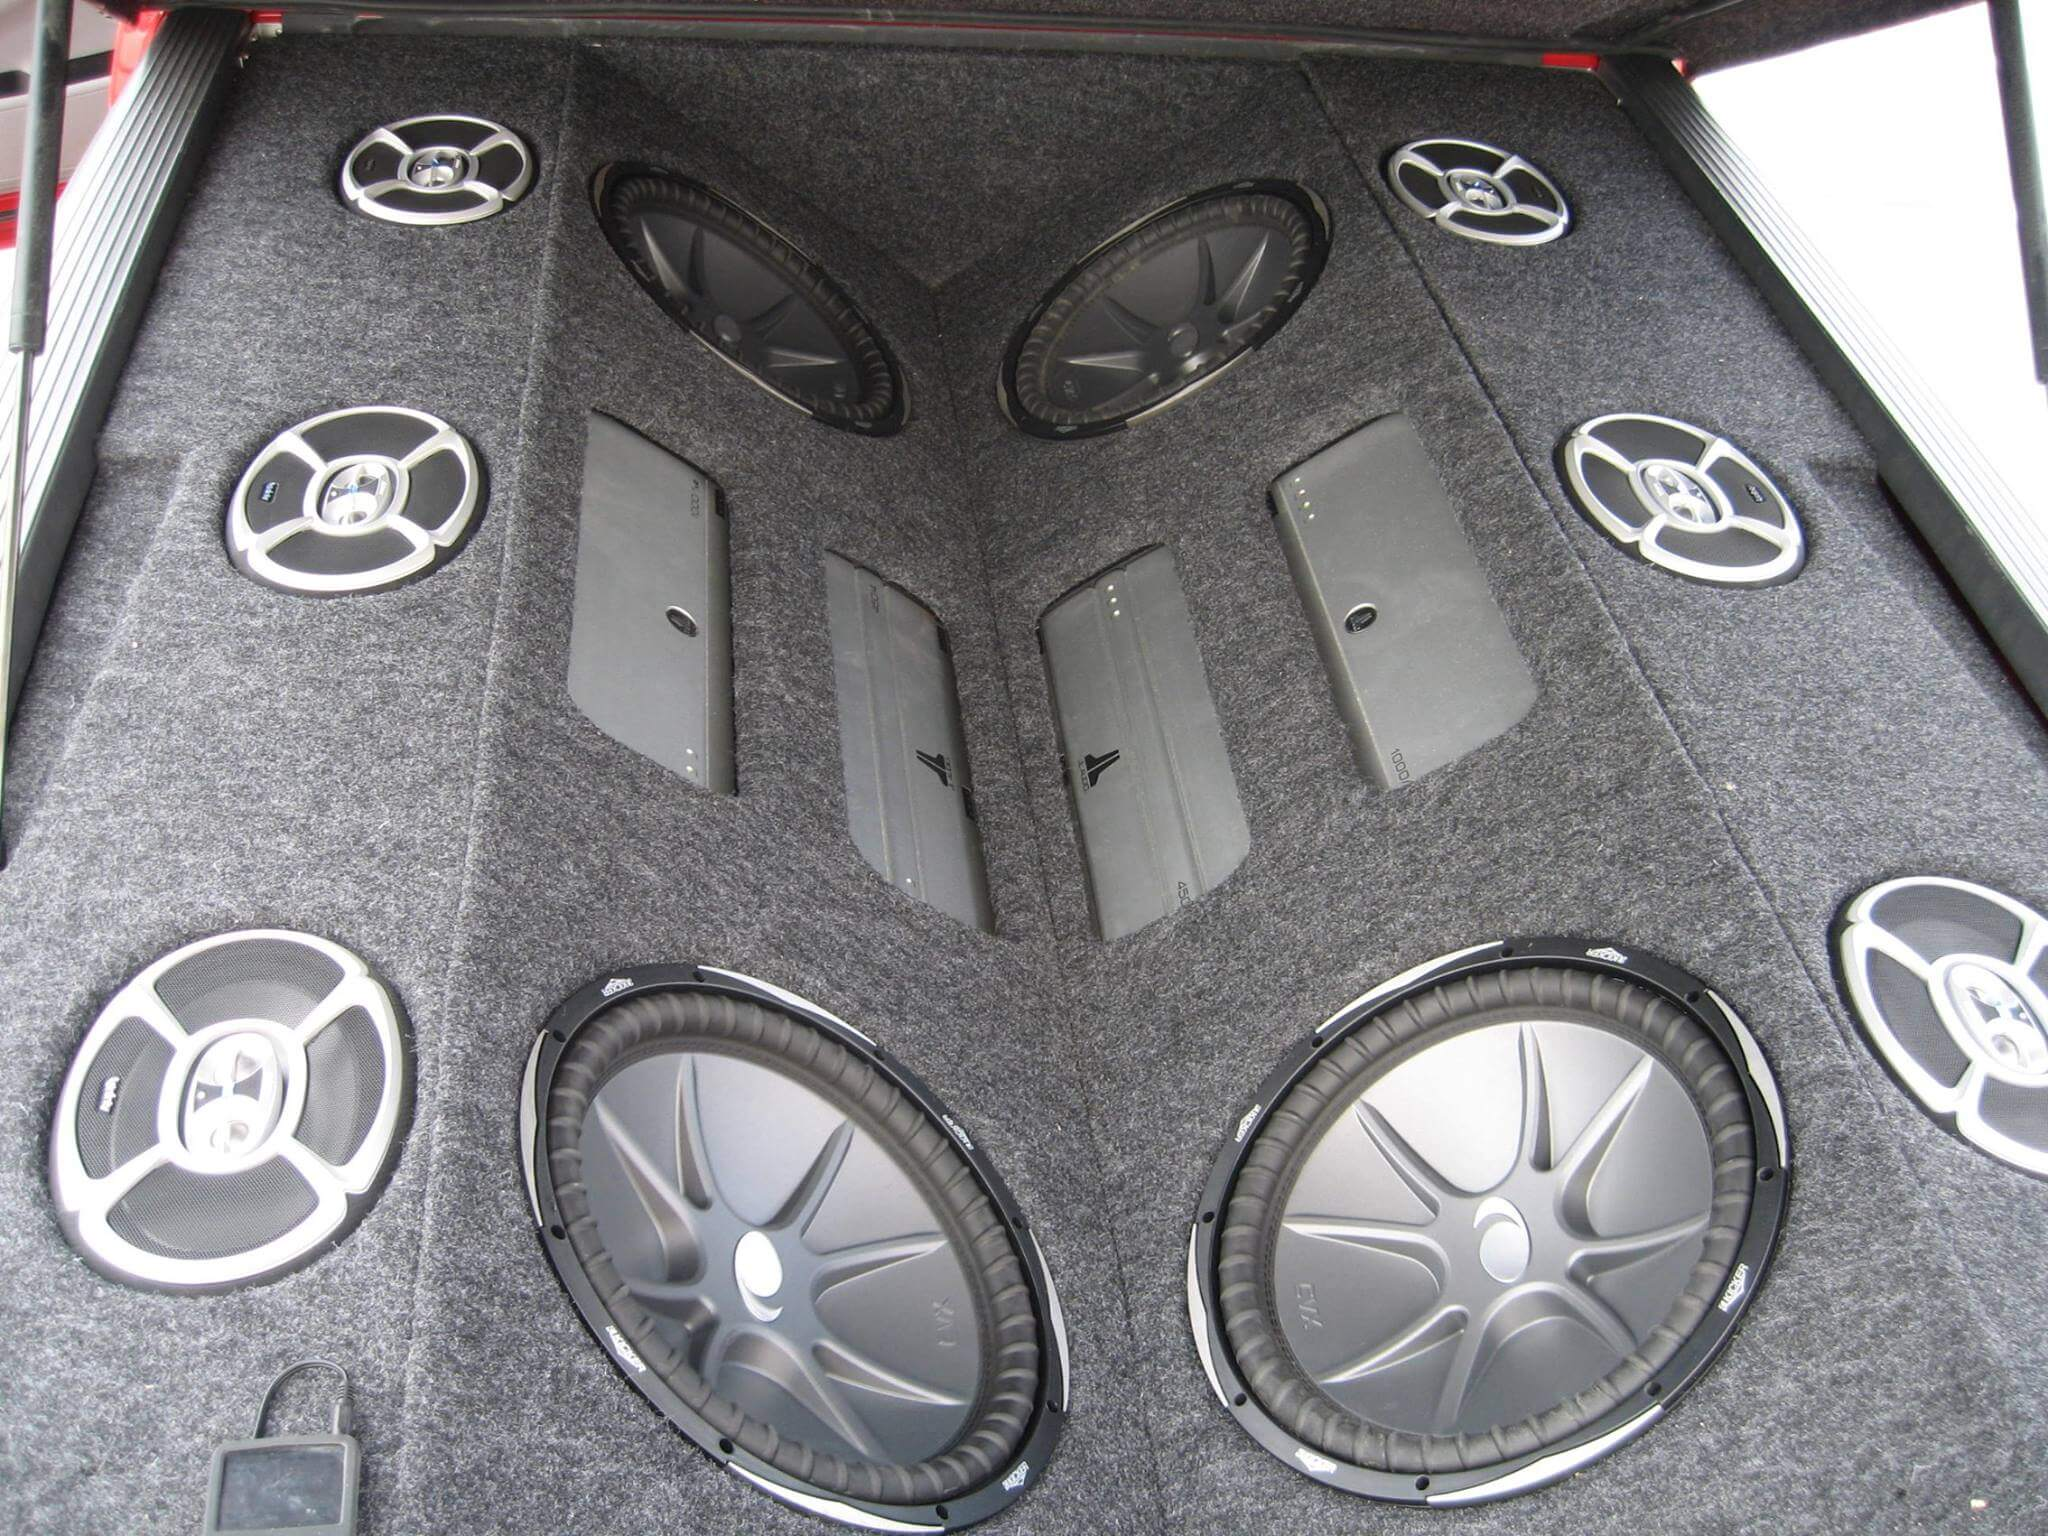 Come to Stereo Depot in San Diego and El Cajon for car audio installation